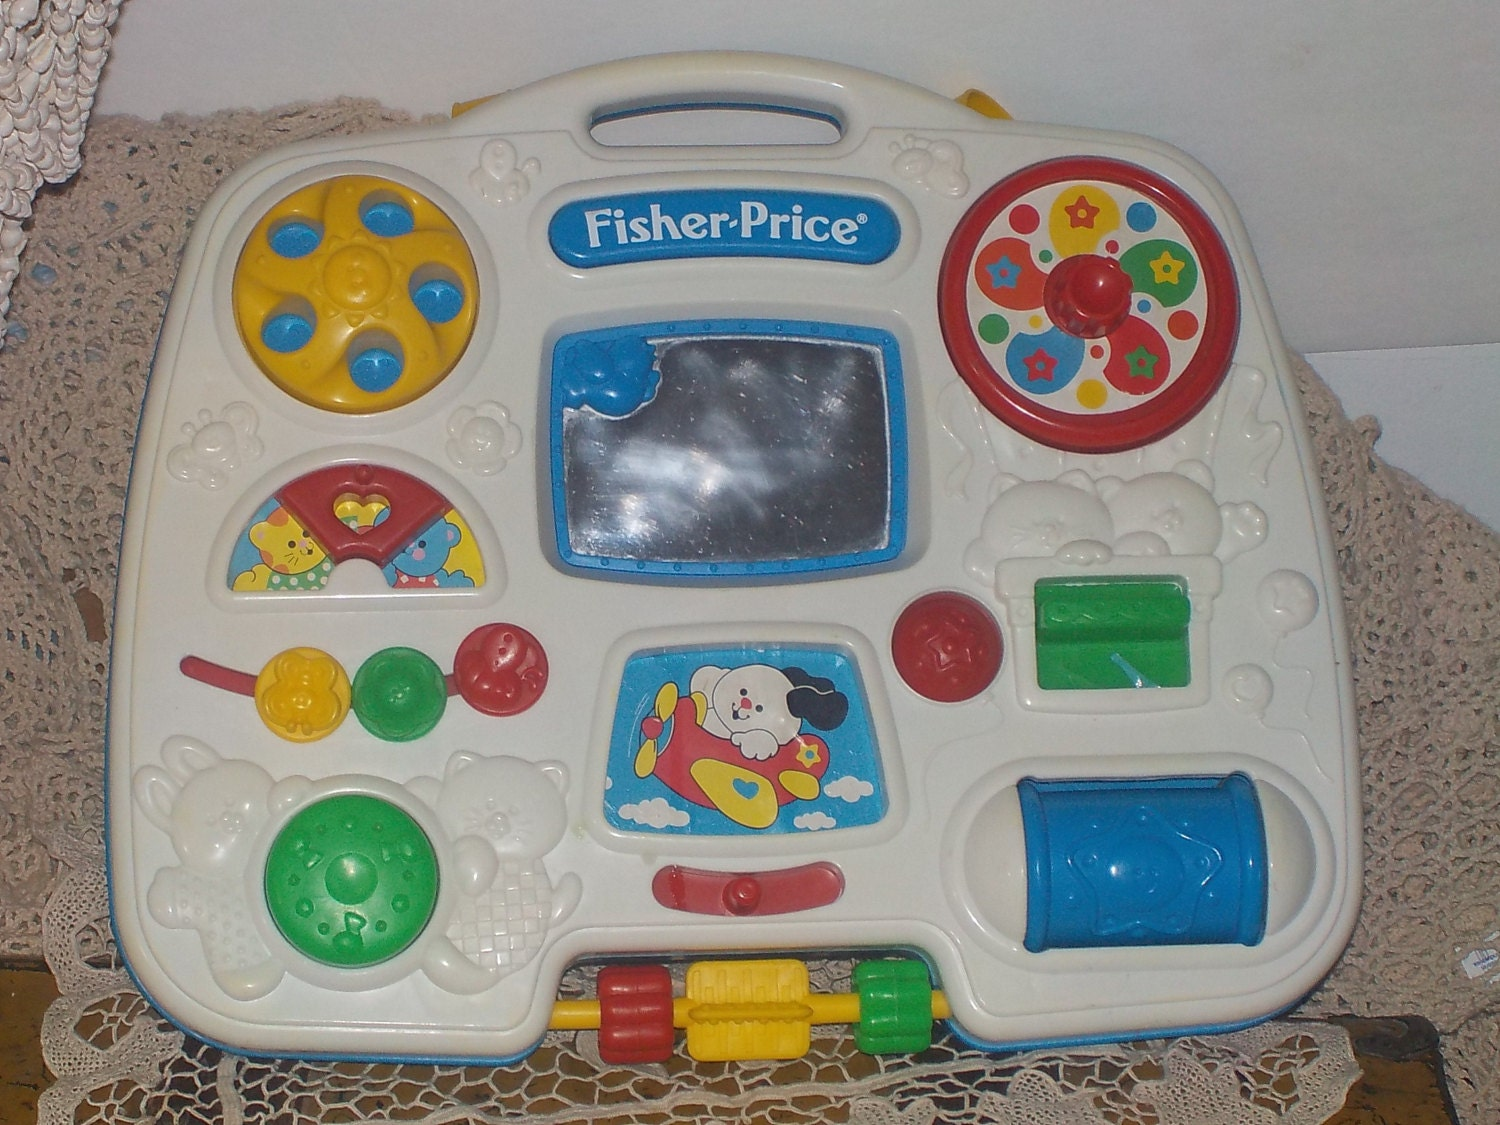 Fisher Price Crib Toys : Busy box fisher price crib toy vintage baby gift